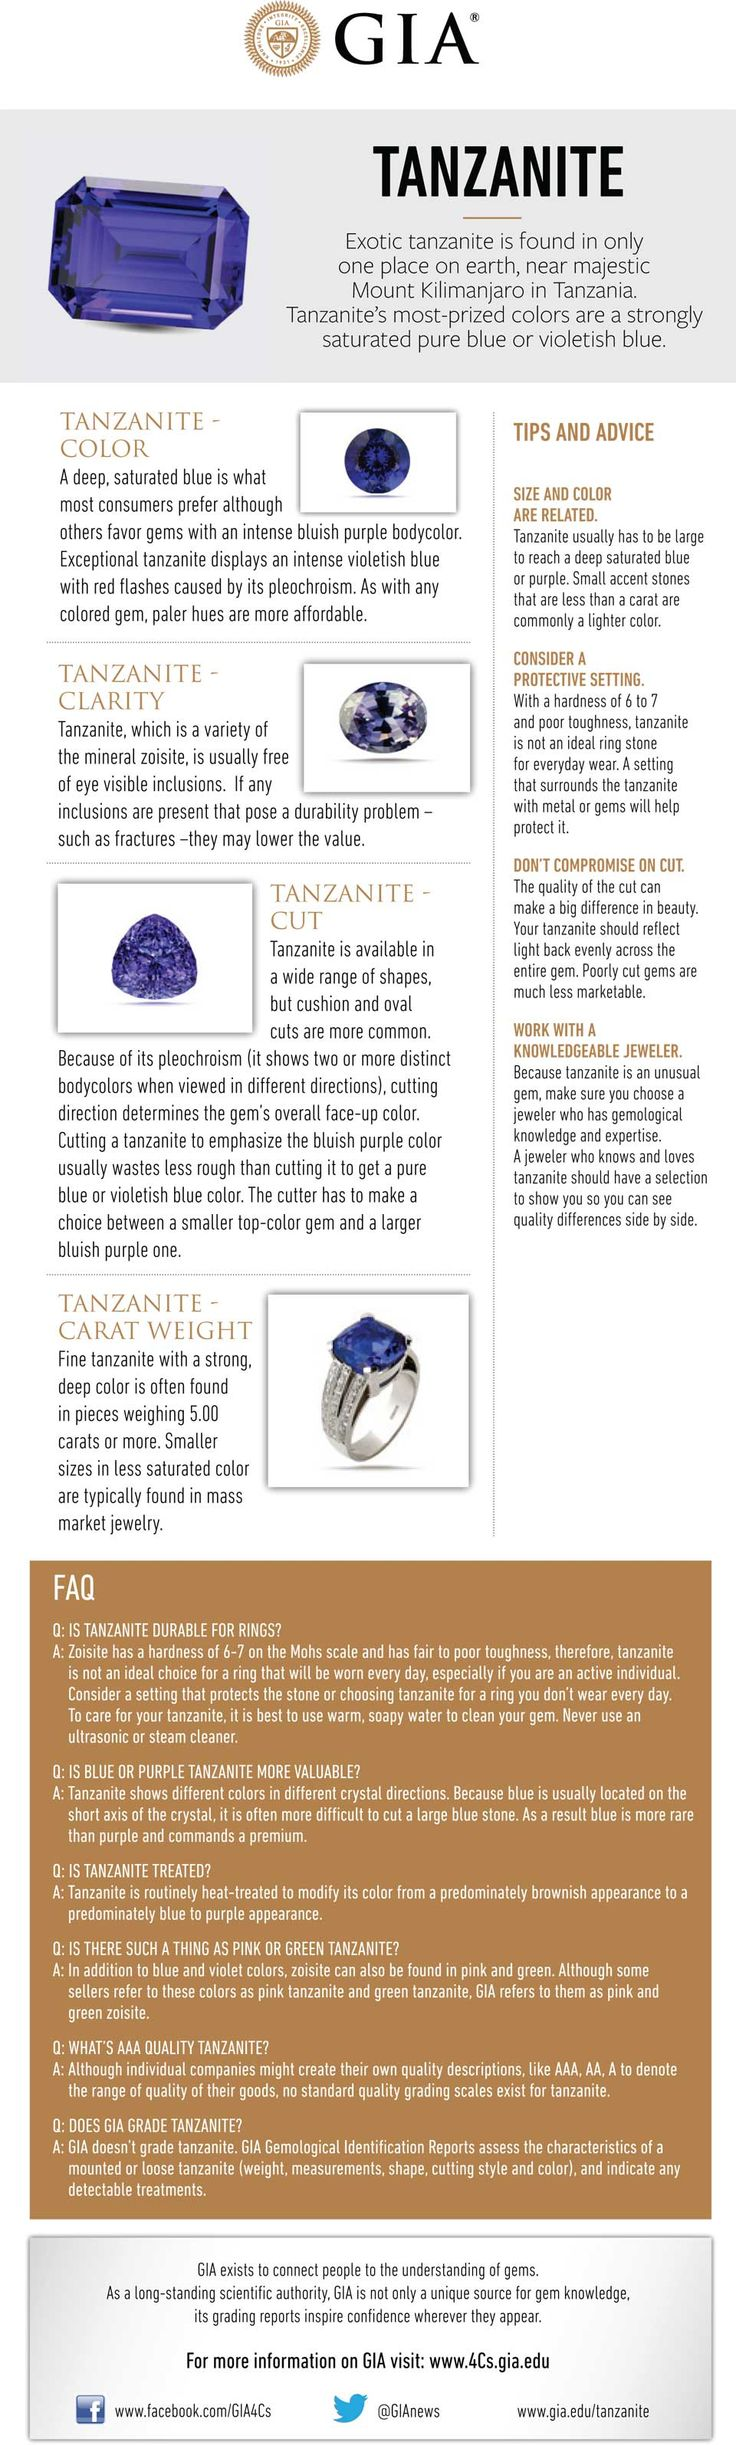 #Tanzanite Buying Guide.